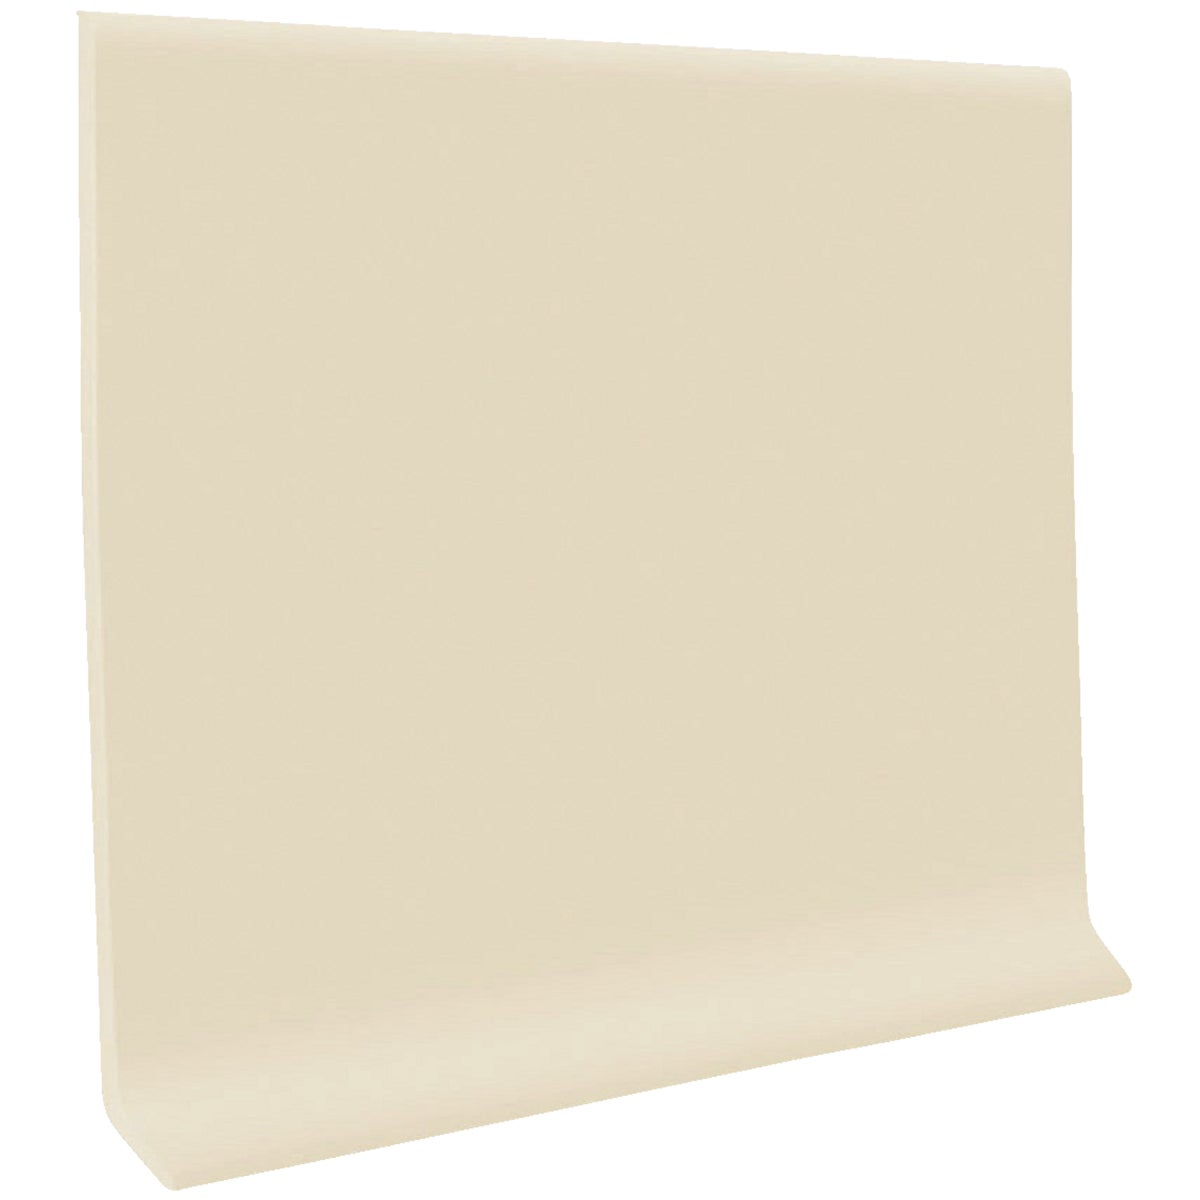 "4""X4' ALMOND WALL BASE - H1640C53P184 by Roppe Corporation"